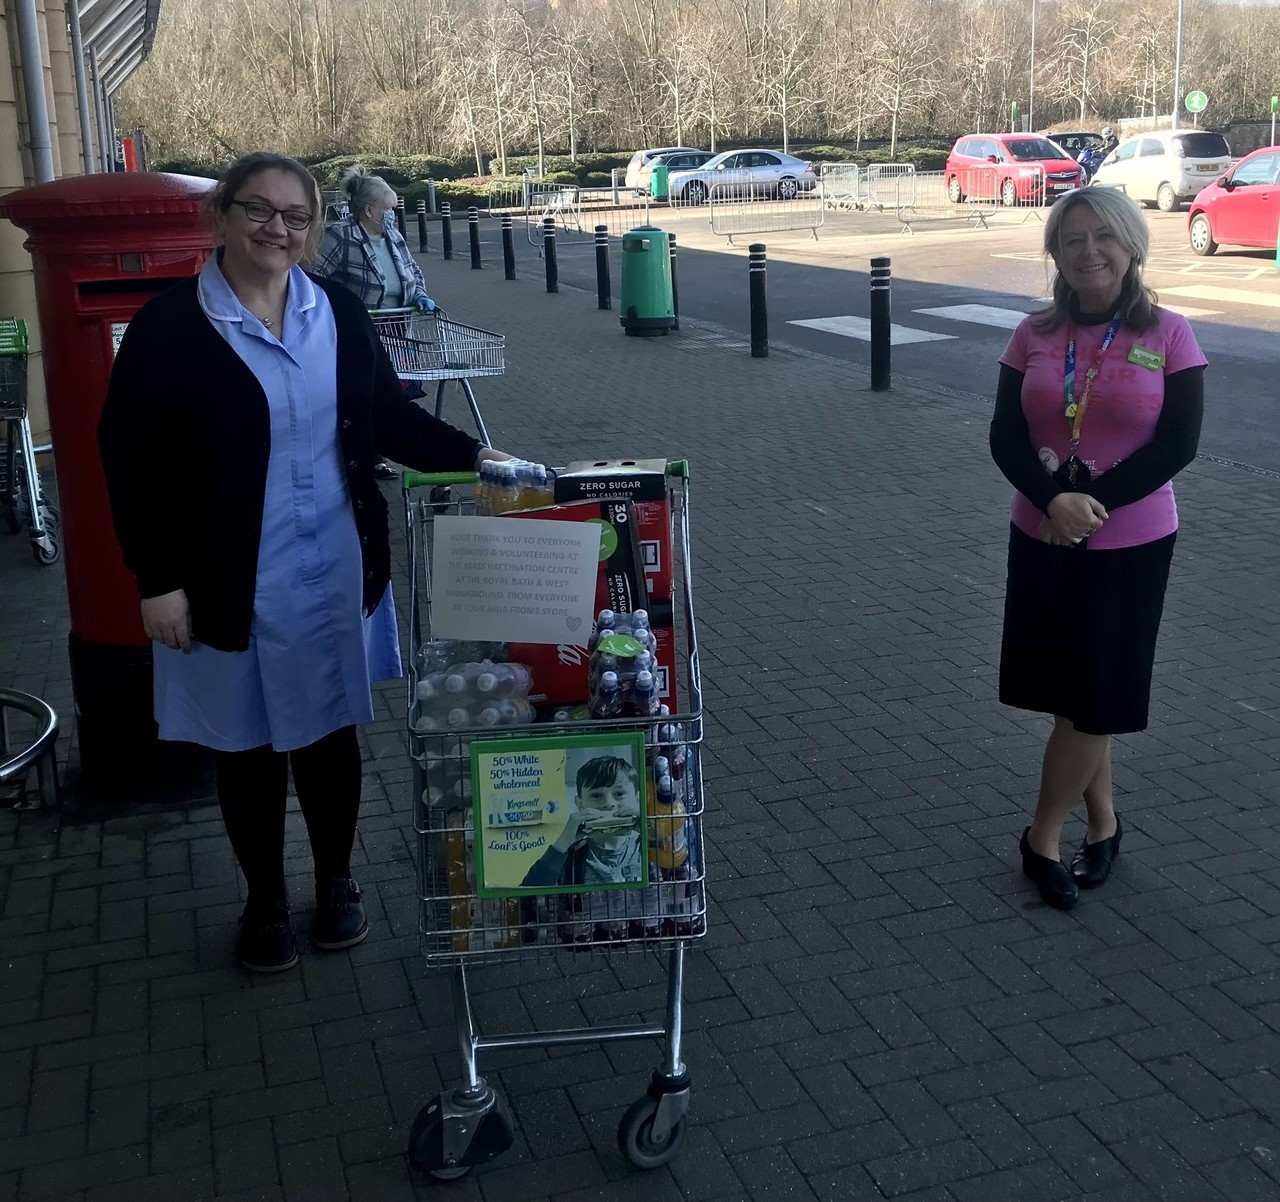 Donation to vaccination centre | Asda Frome